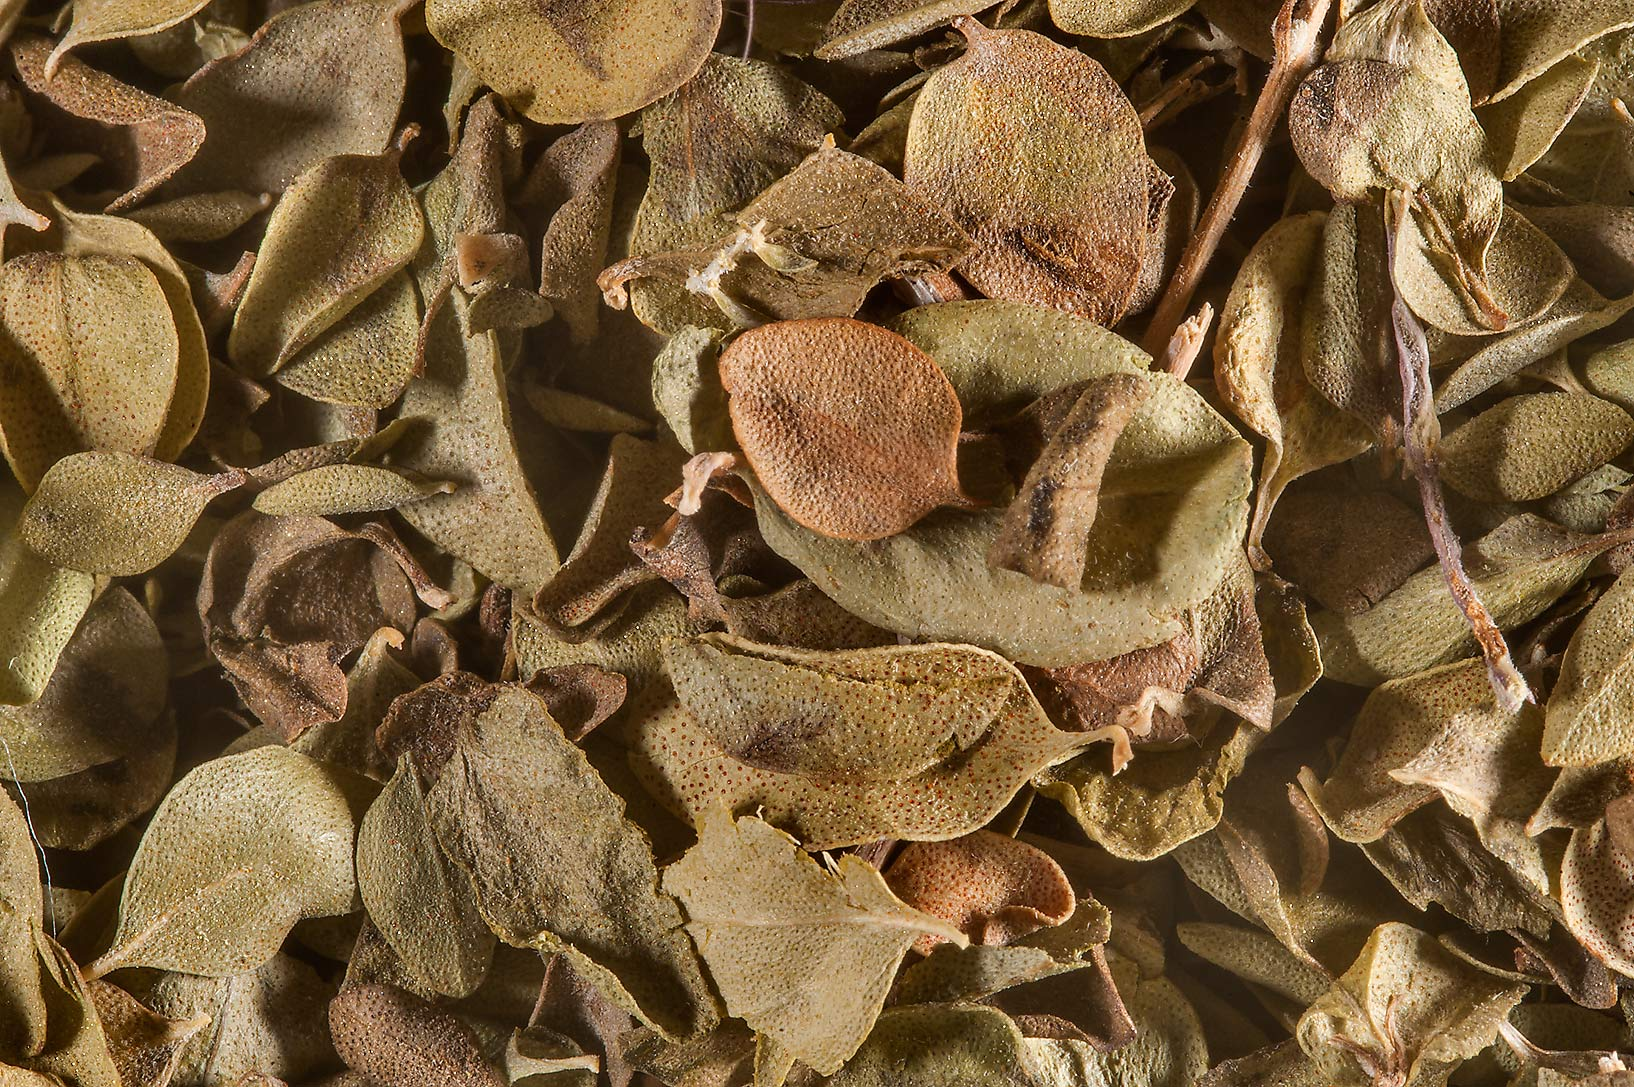 Some dry leaves in spice section in Souq Waqif (Old Market). Doha, Qatar